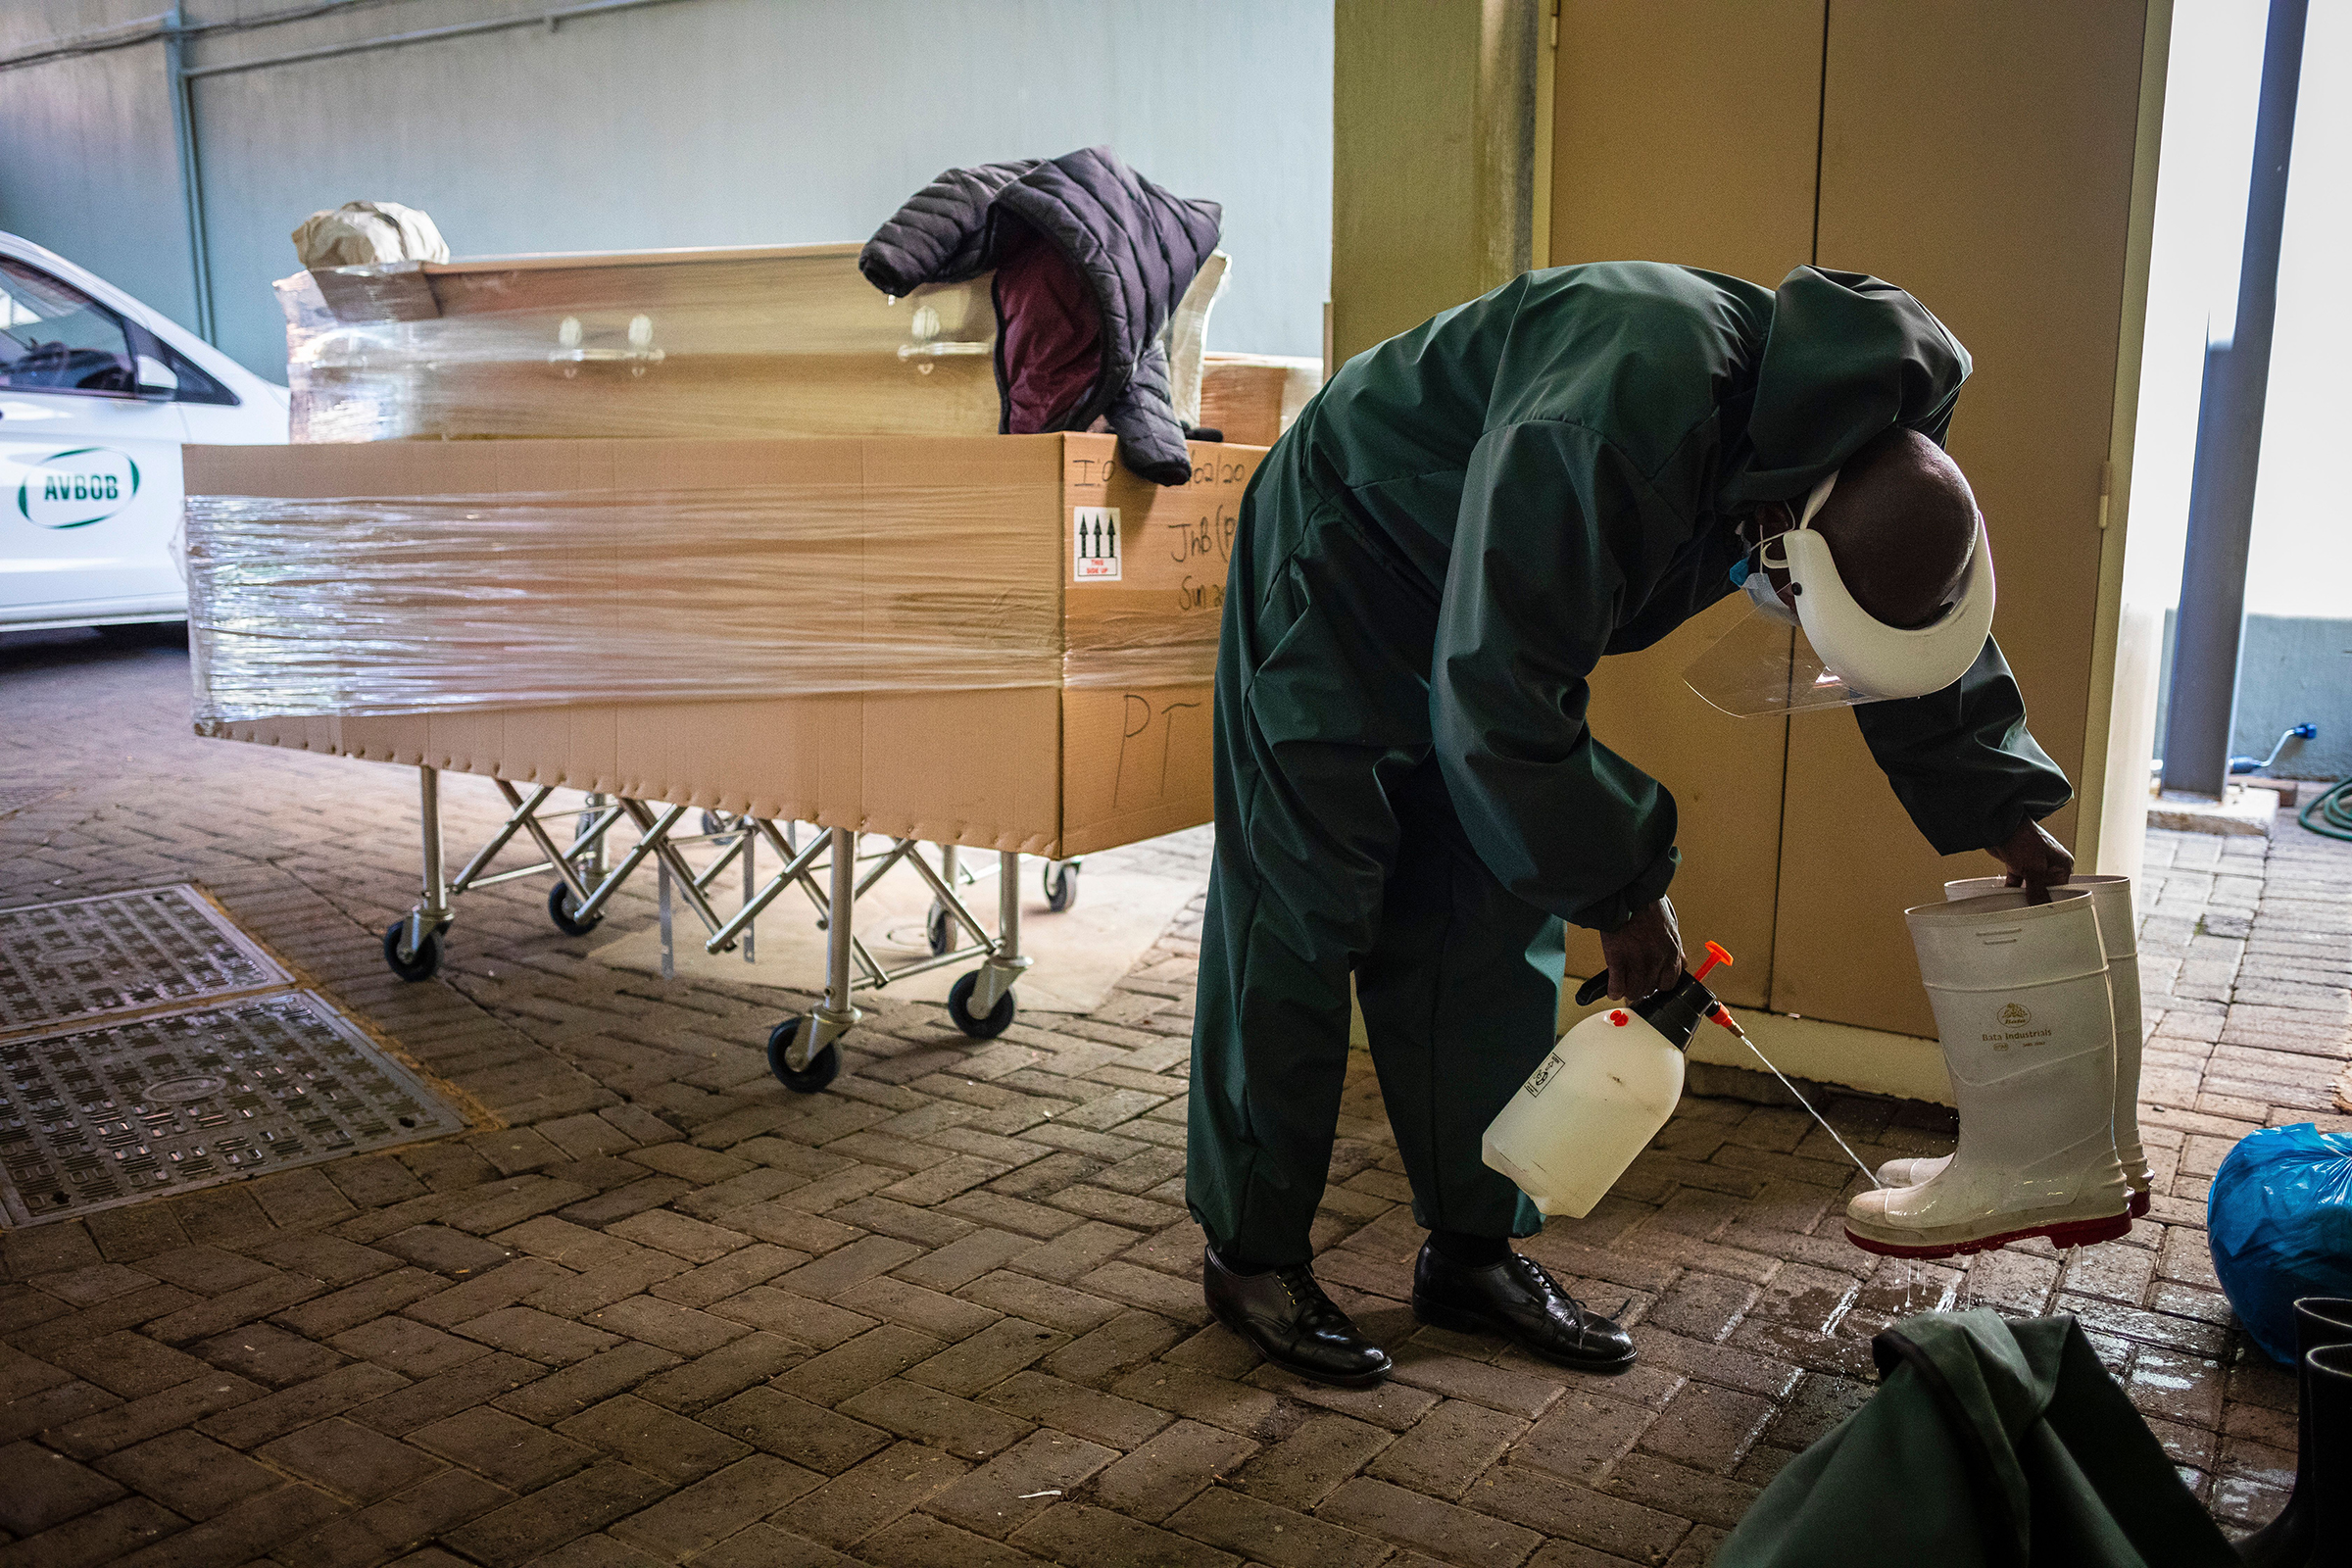 Undertaker Steven Ntuli sterilizes his boots after collecting a suspected Covid-19 victim from a government hospital in Johannesburg, South Africa, on 21 July 2020.